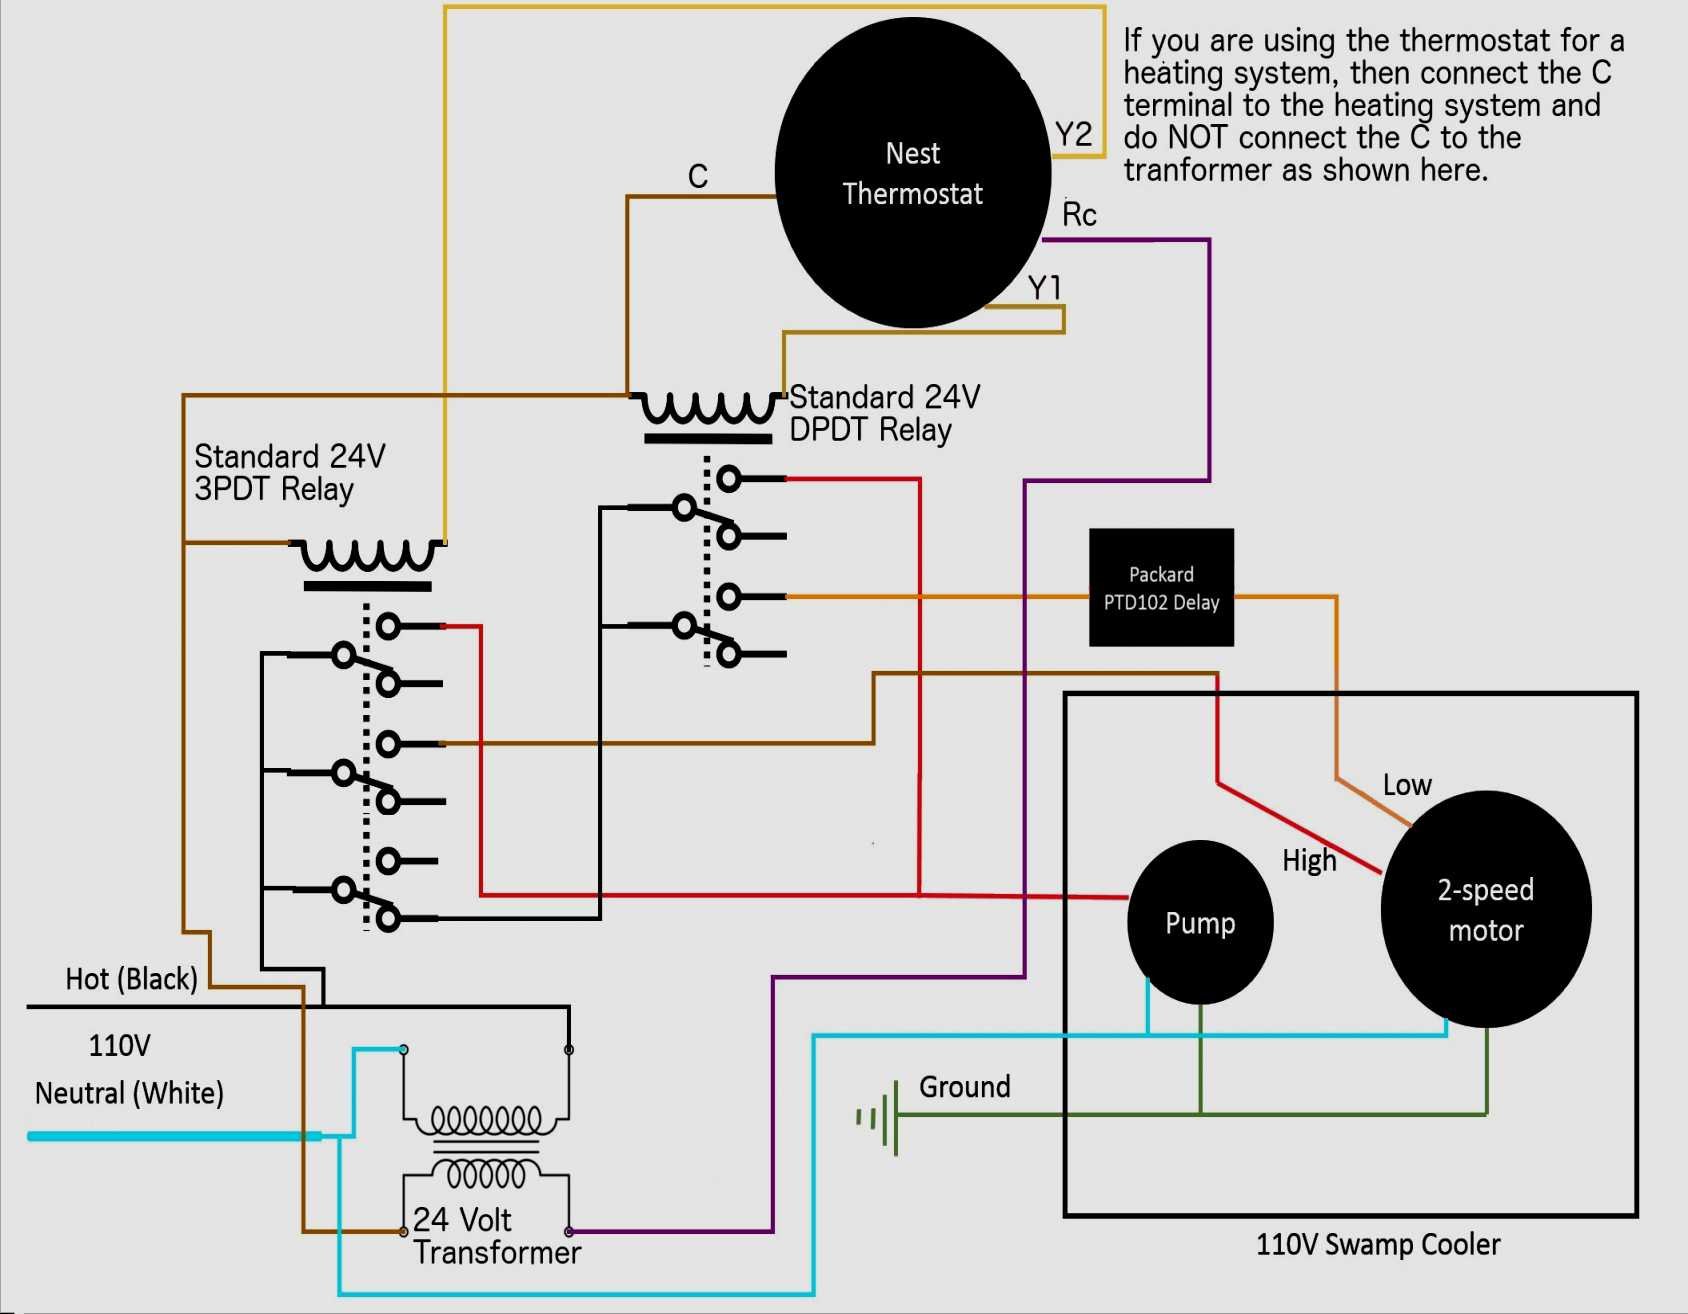 Honeywell Humidifier Wiring Diagram With Nest - Wiring Diagram Essig - Nest Thermostat Bypass Humidifier Wiring Diagram